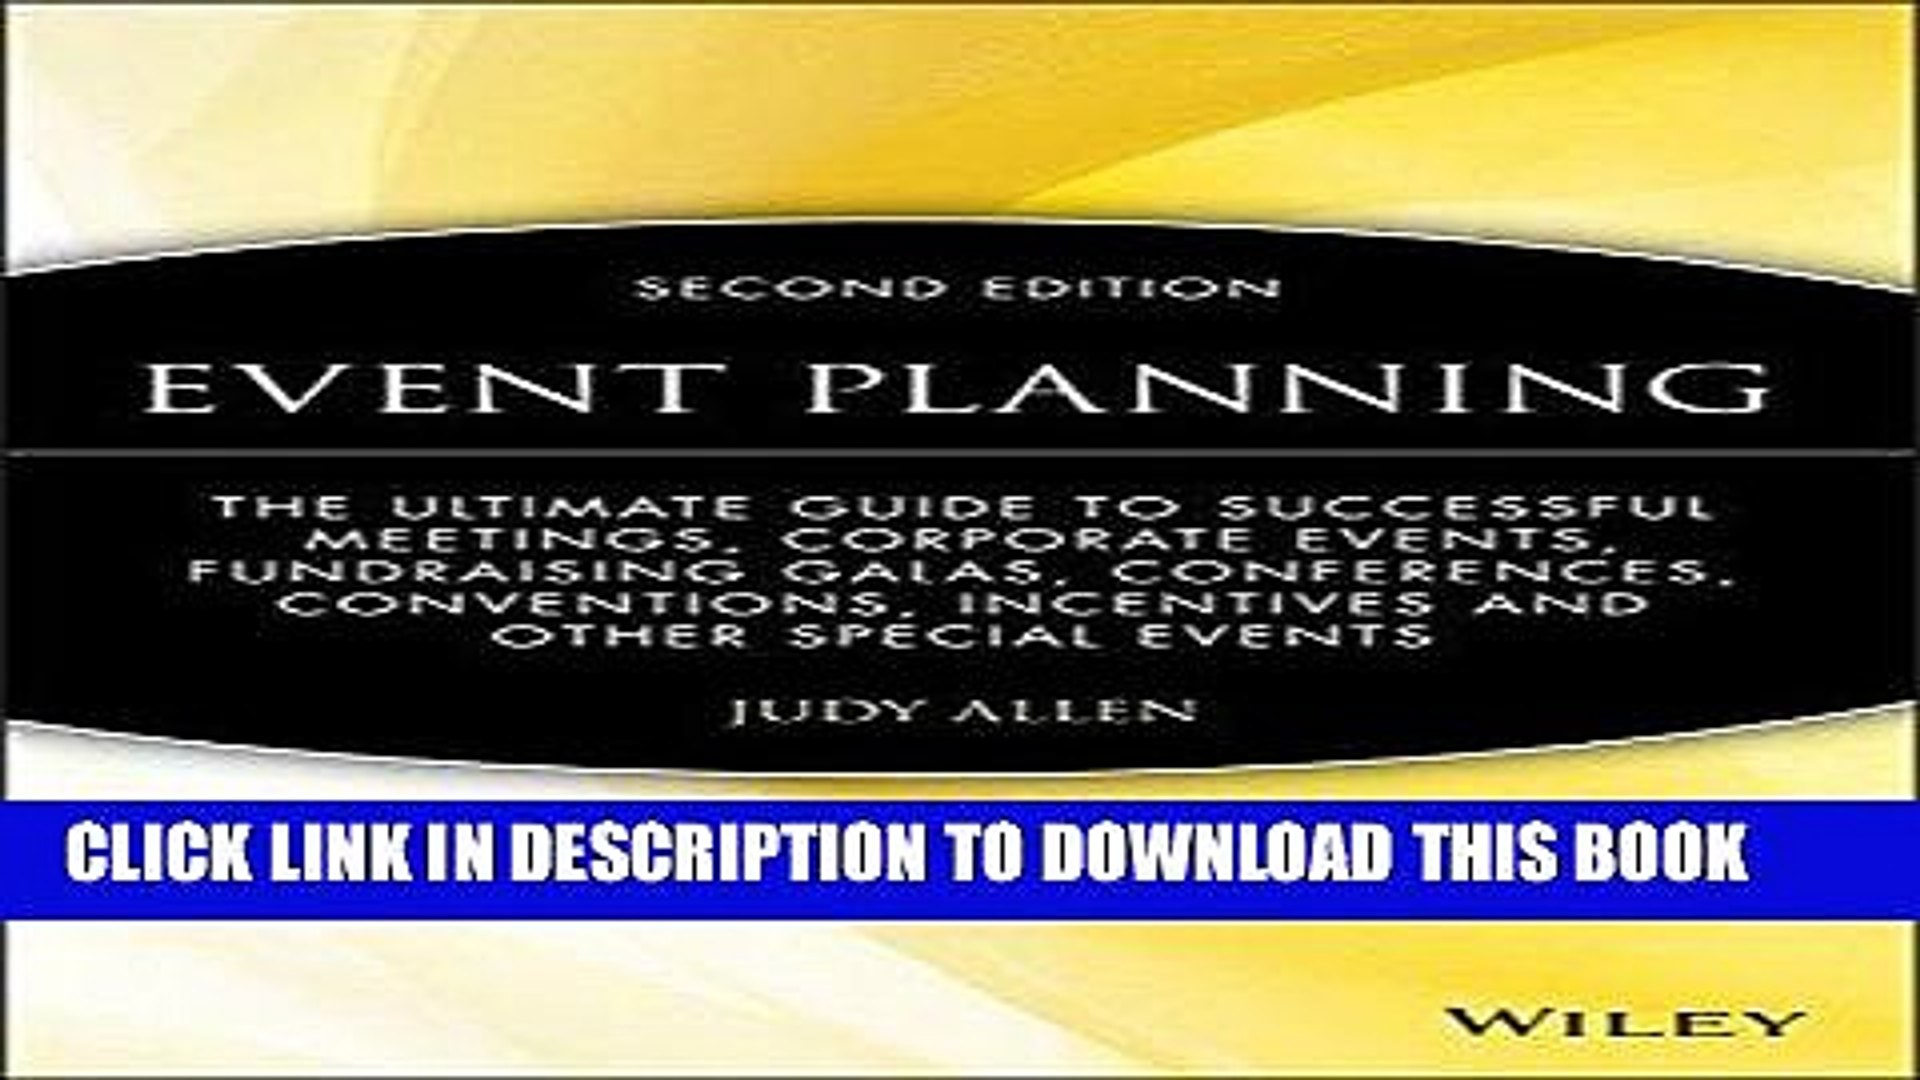 [Free Read] Event Planning: The Ultimate Guide To Successful Meetings, Corporate Events,